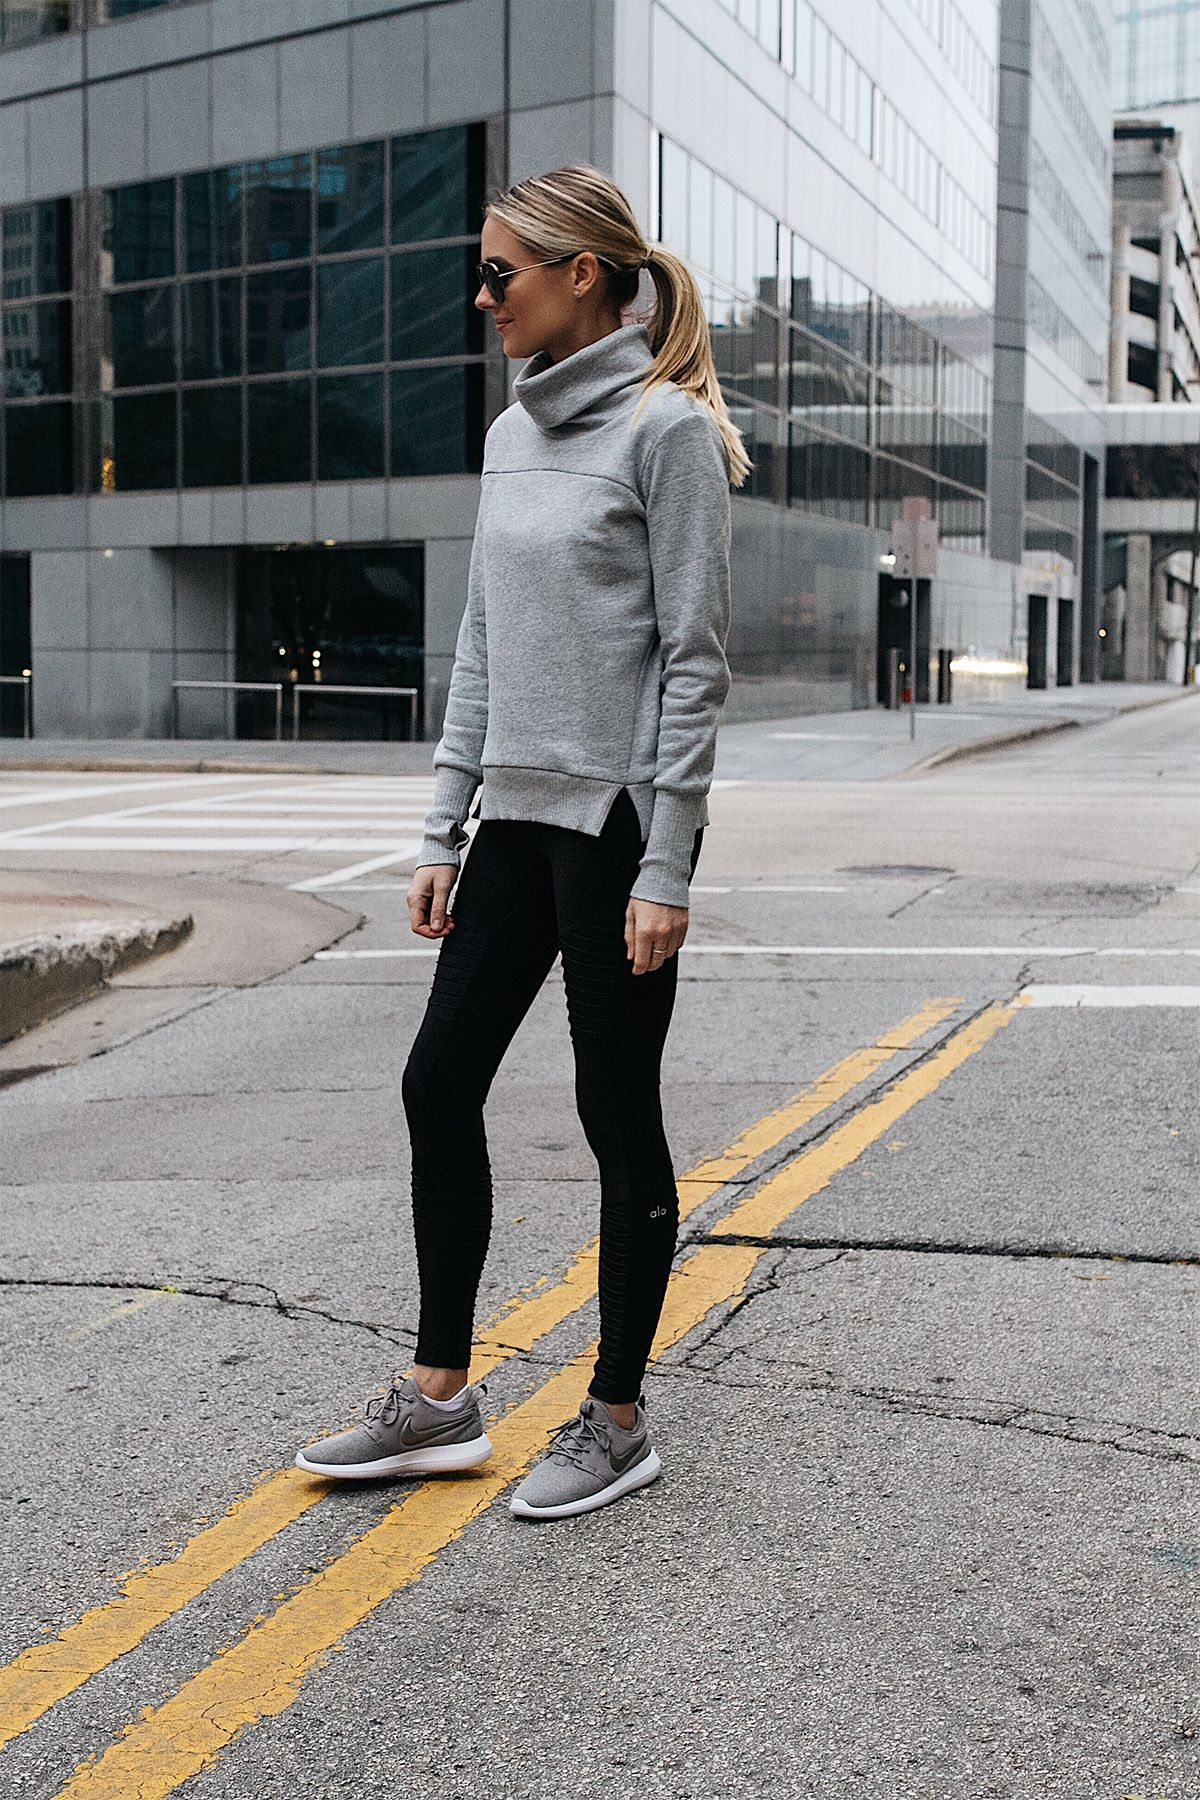 590ff07f6c1 Blonde Woman Wearing Alo Grey Funnel Neck Sweatshirt Alo Black Moto Leggings  Nike Roshe Two Knit Grey Sneakers Fashion Jackson Dallas Blogger Fashion ...